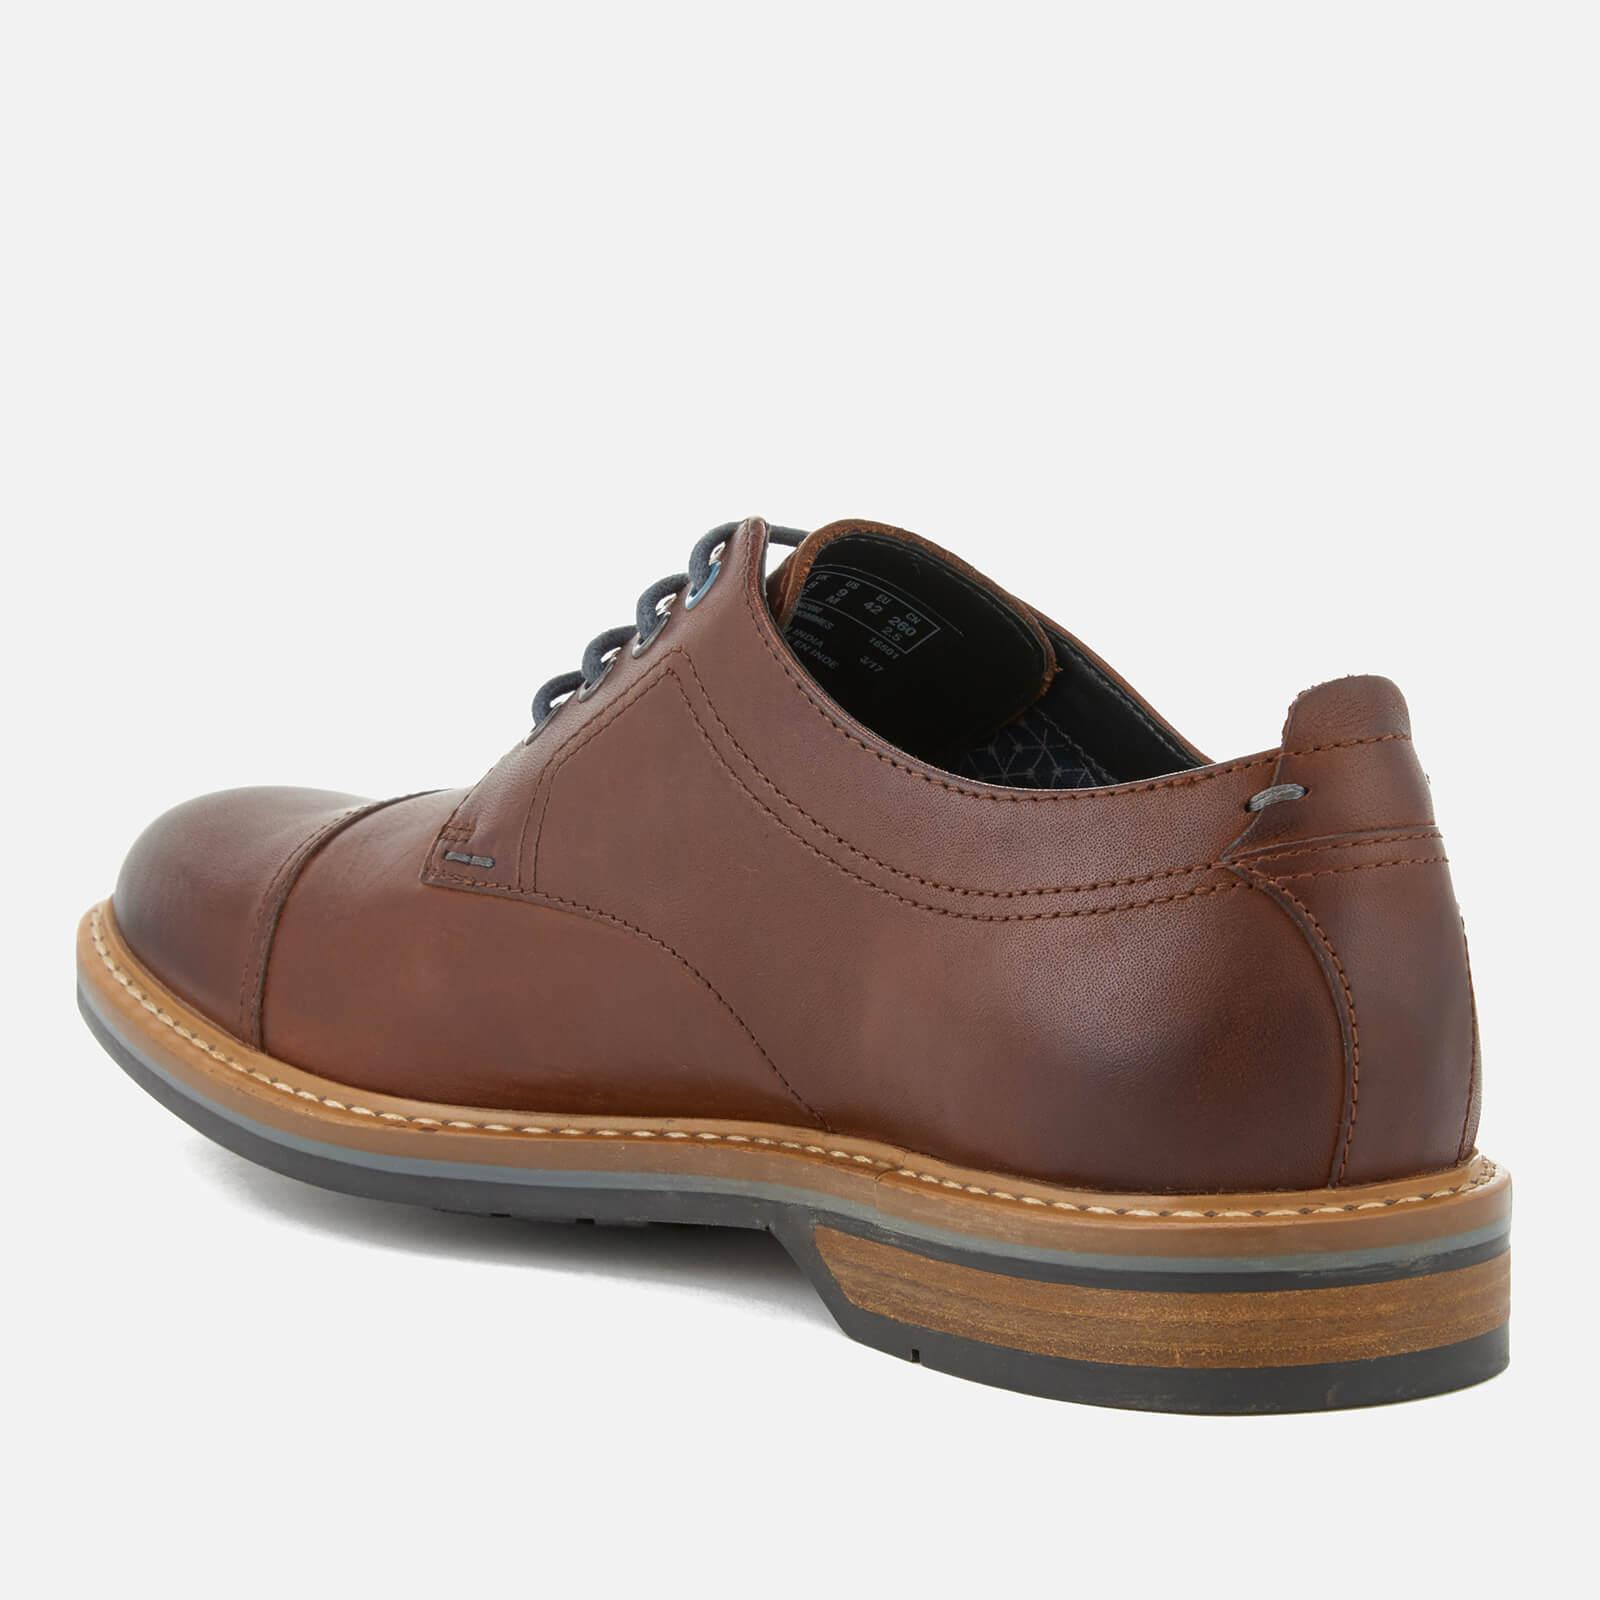 Clarks Pitney Cap Leather Toe Cap Derby Shoes In Brown For